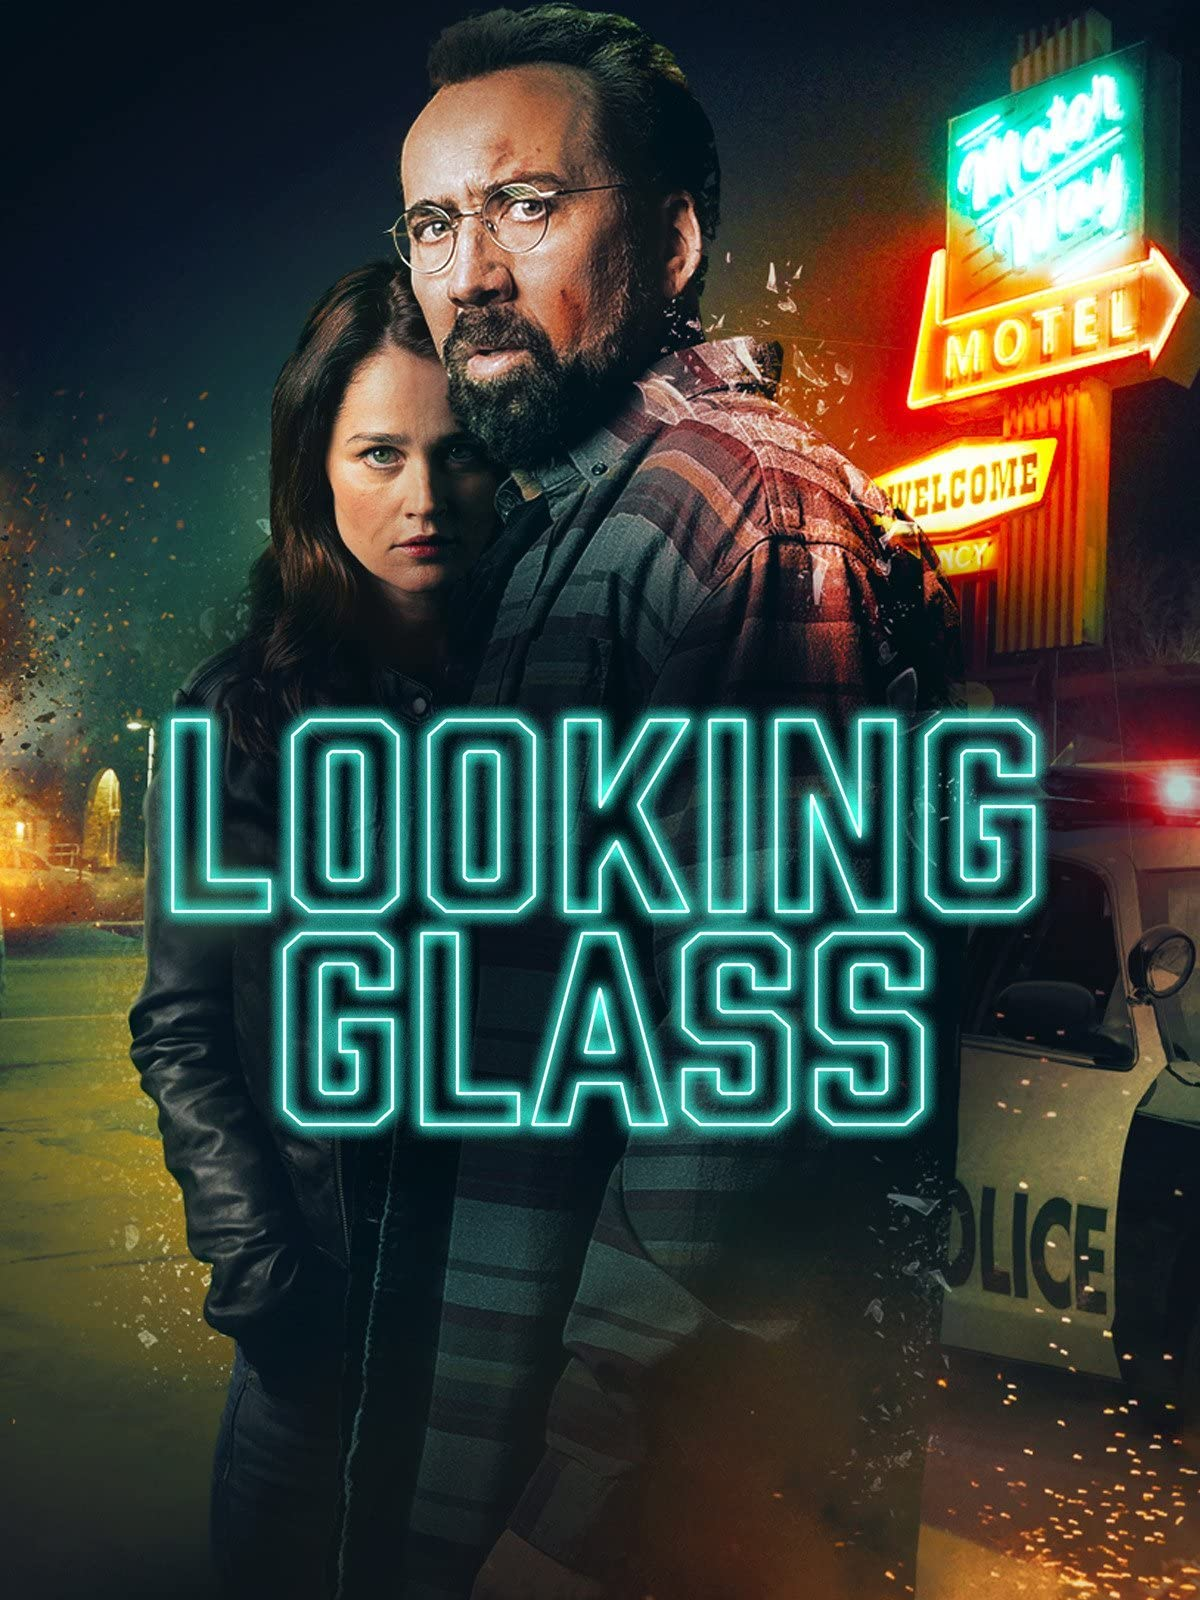 Looking Glass (2018) Hindi Dubbed